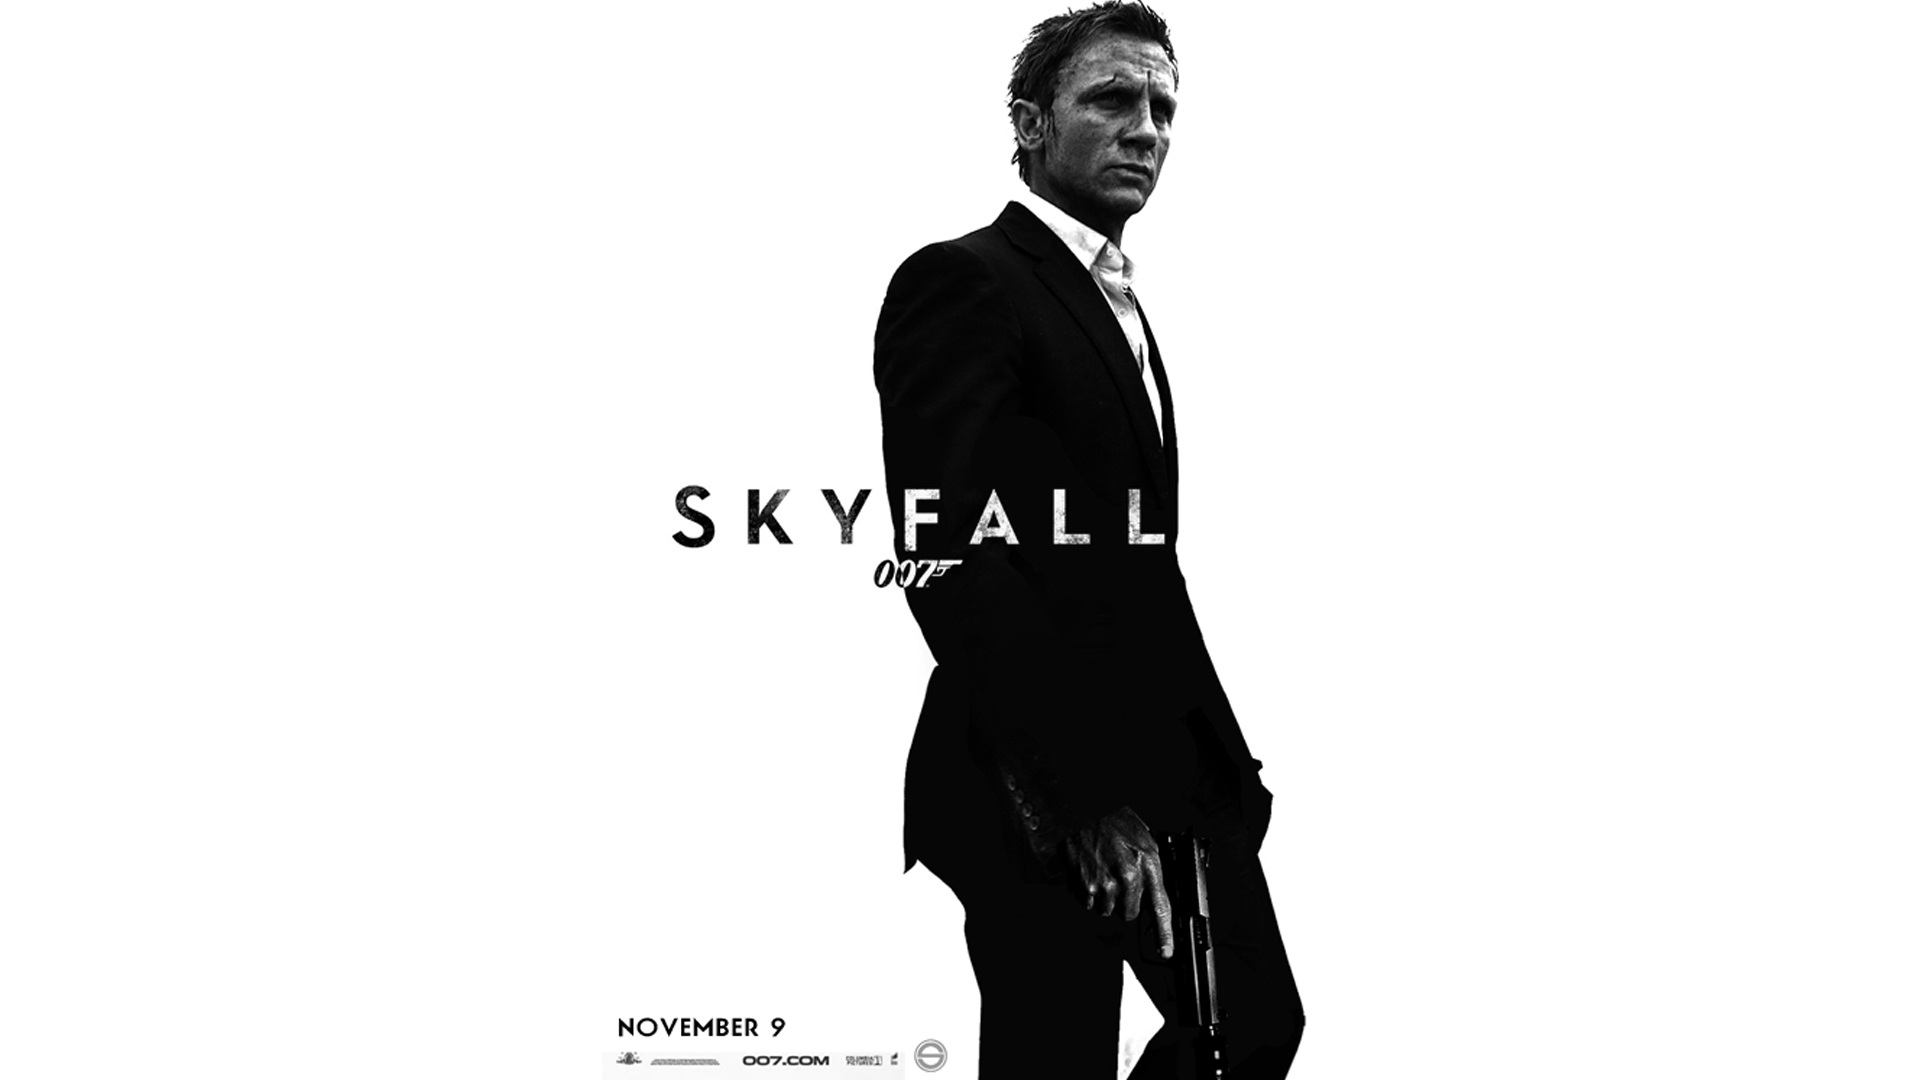 Skyfall-James-Bond-wallpaper-daniel-craig-32623669-1920-1080